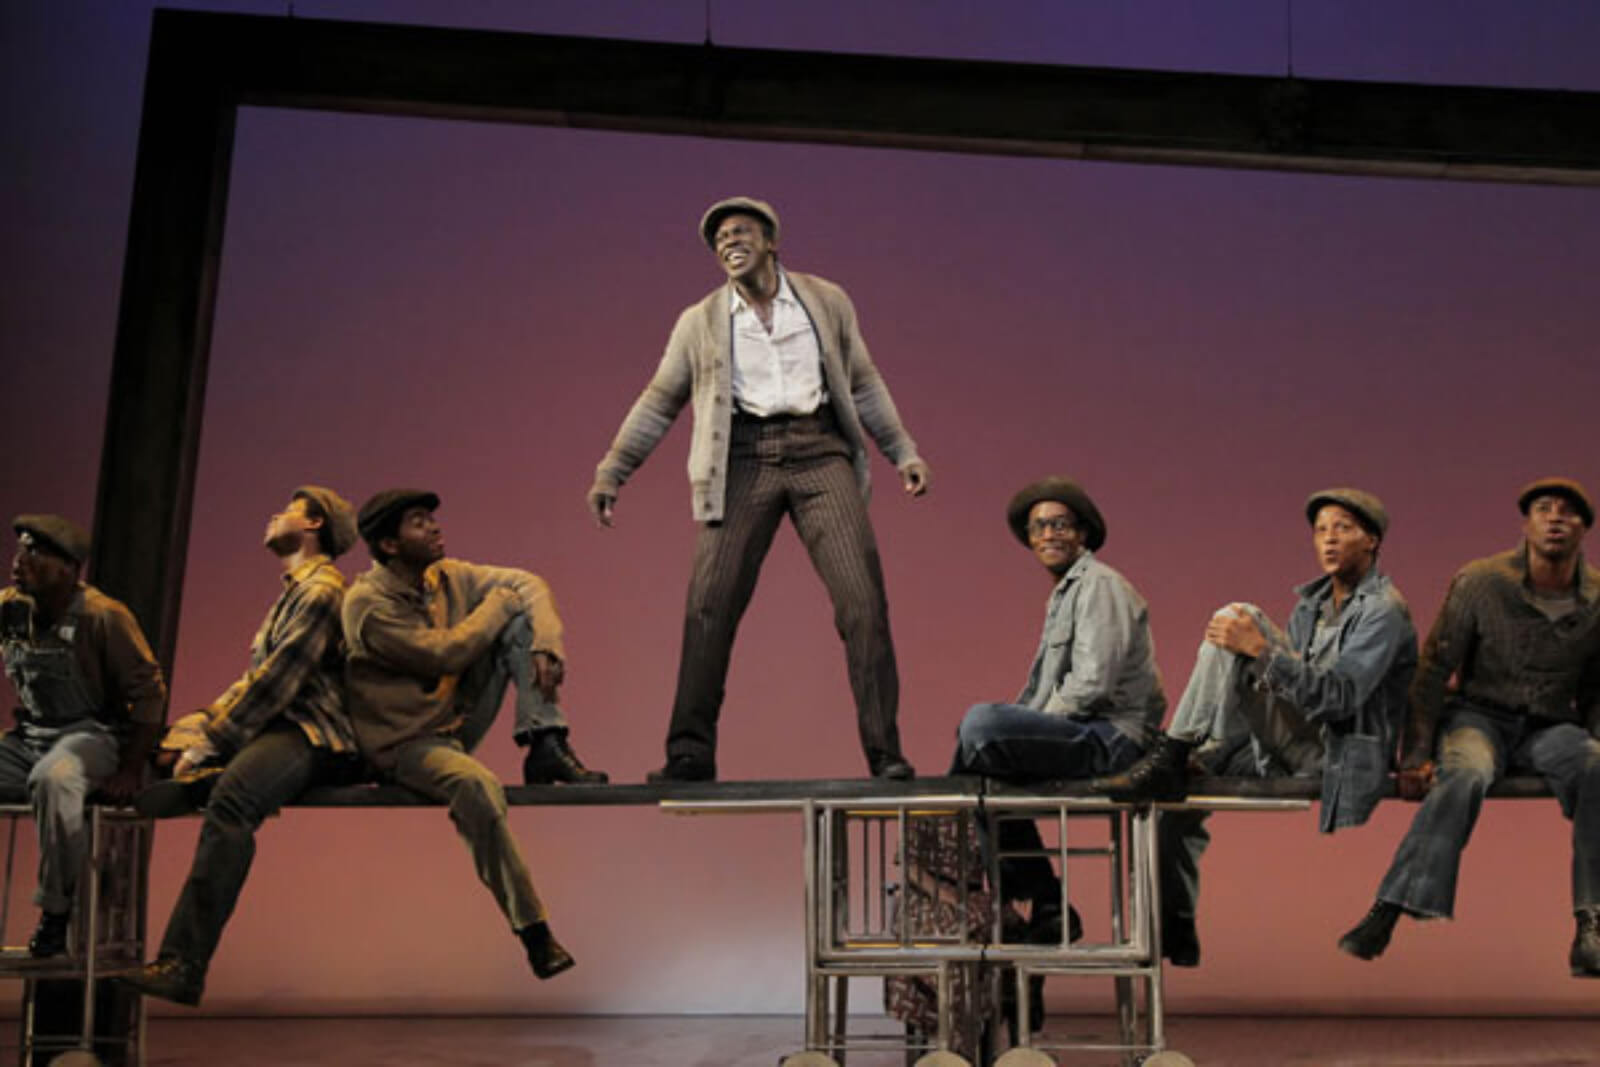 """Haywood Patterson (Joshua Henry) and the Scottsboro Boys sing """"Commencing in Chattanooga"""". They are balancing on beams that represent the top of a train. They are dressed in work clothes."""